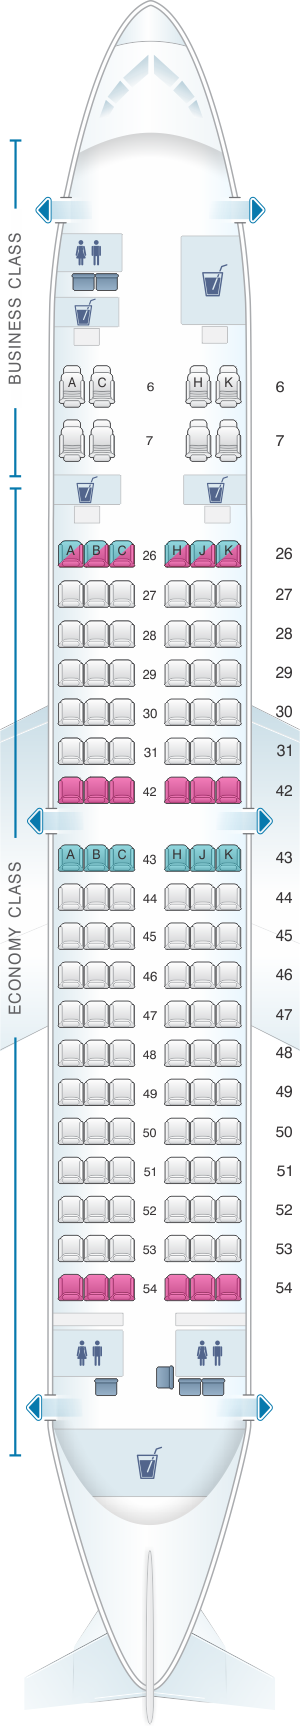 Seat Map Royal Brunei Airlines Airbus A319 | SeatMaestro.com